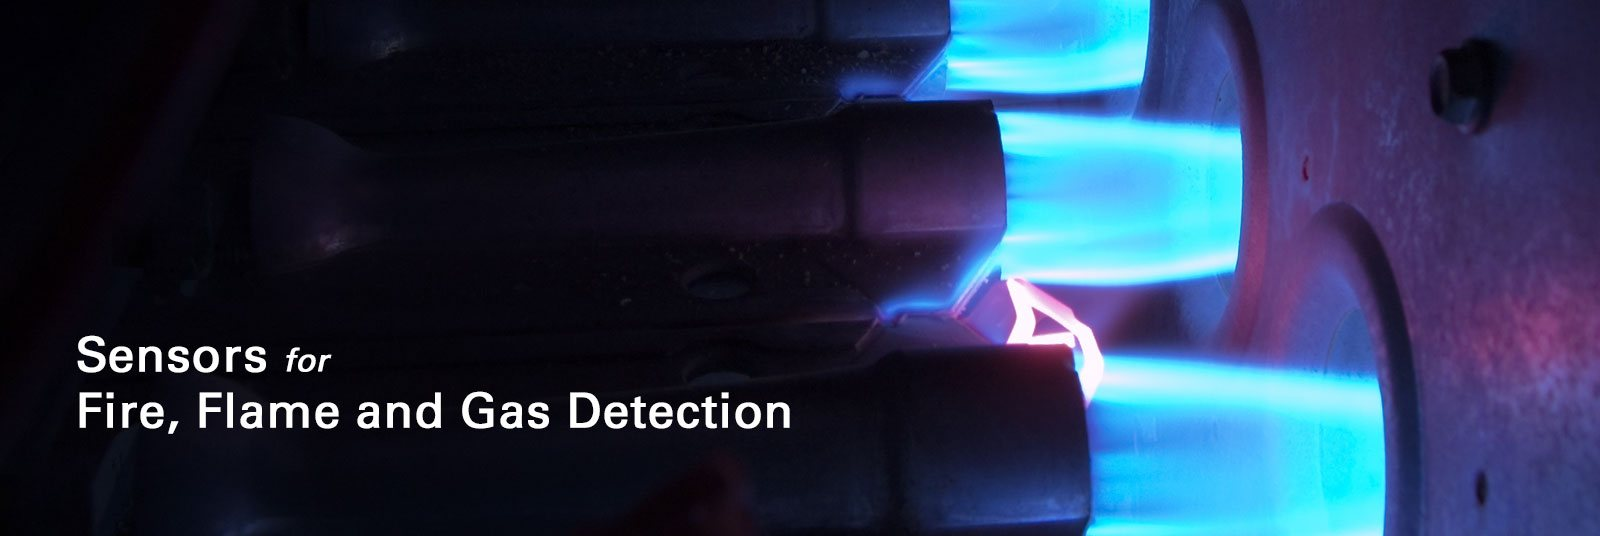 Sensors for fire, flame and gas detection.